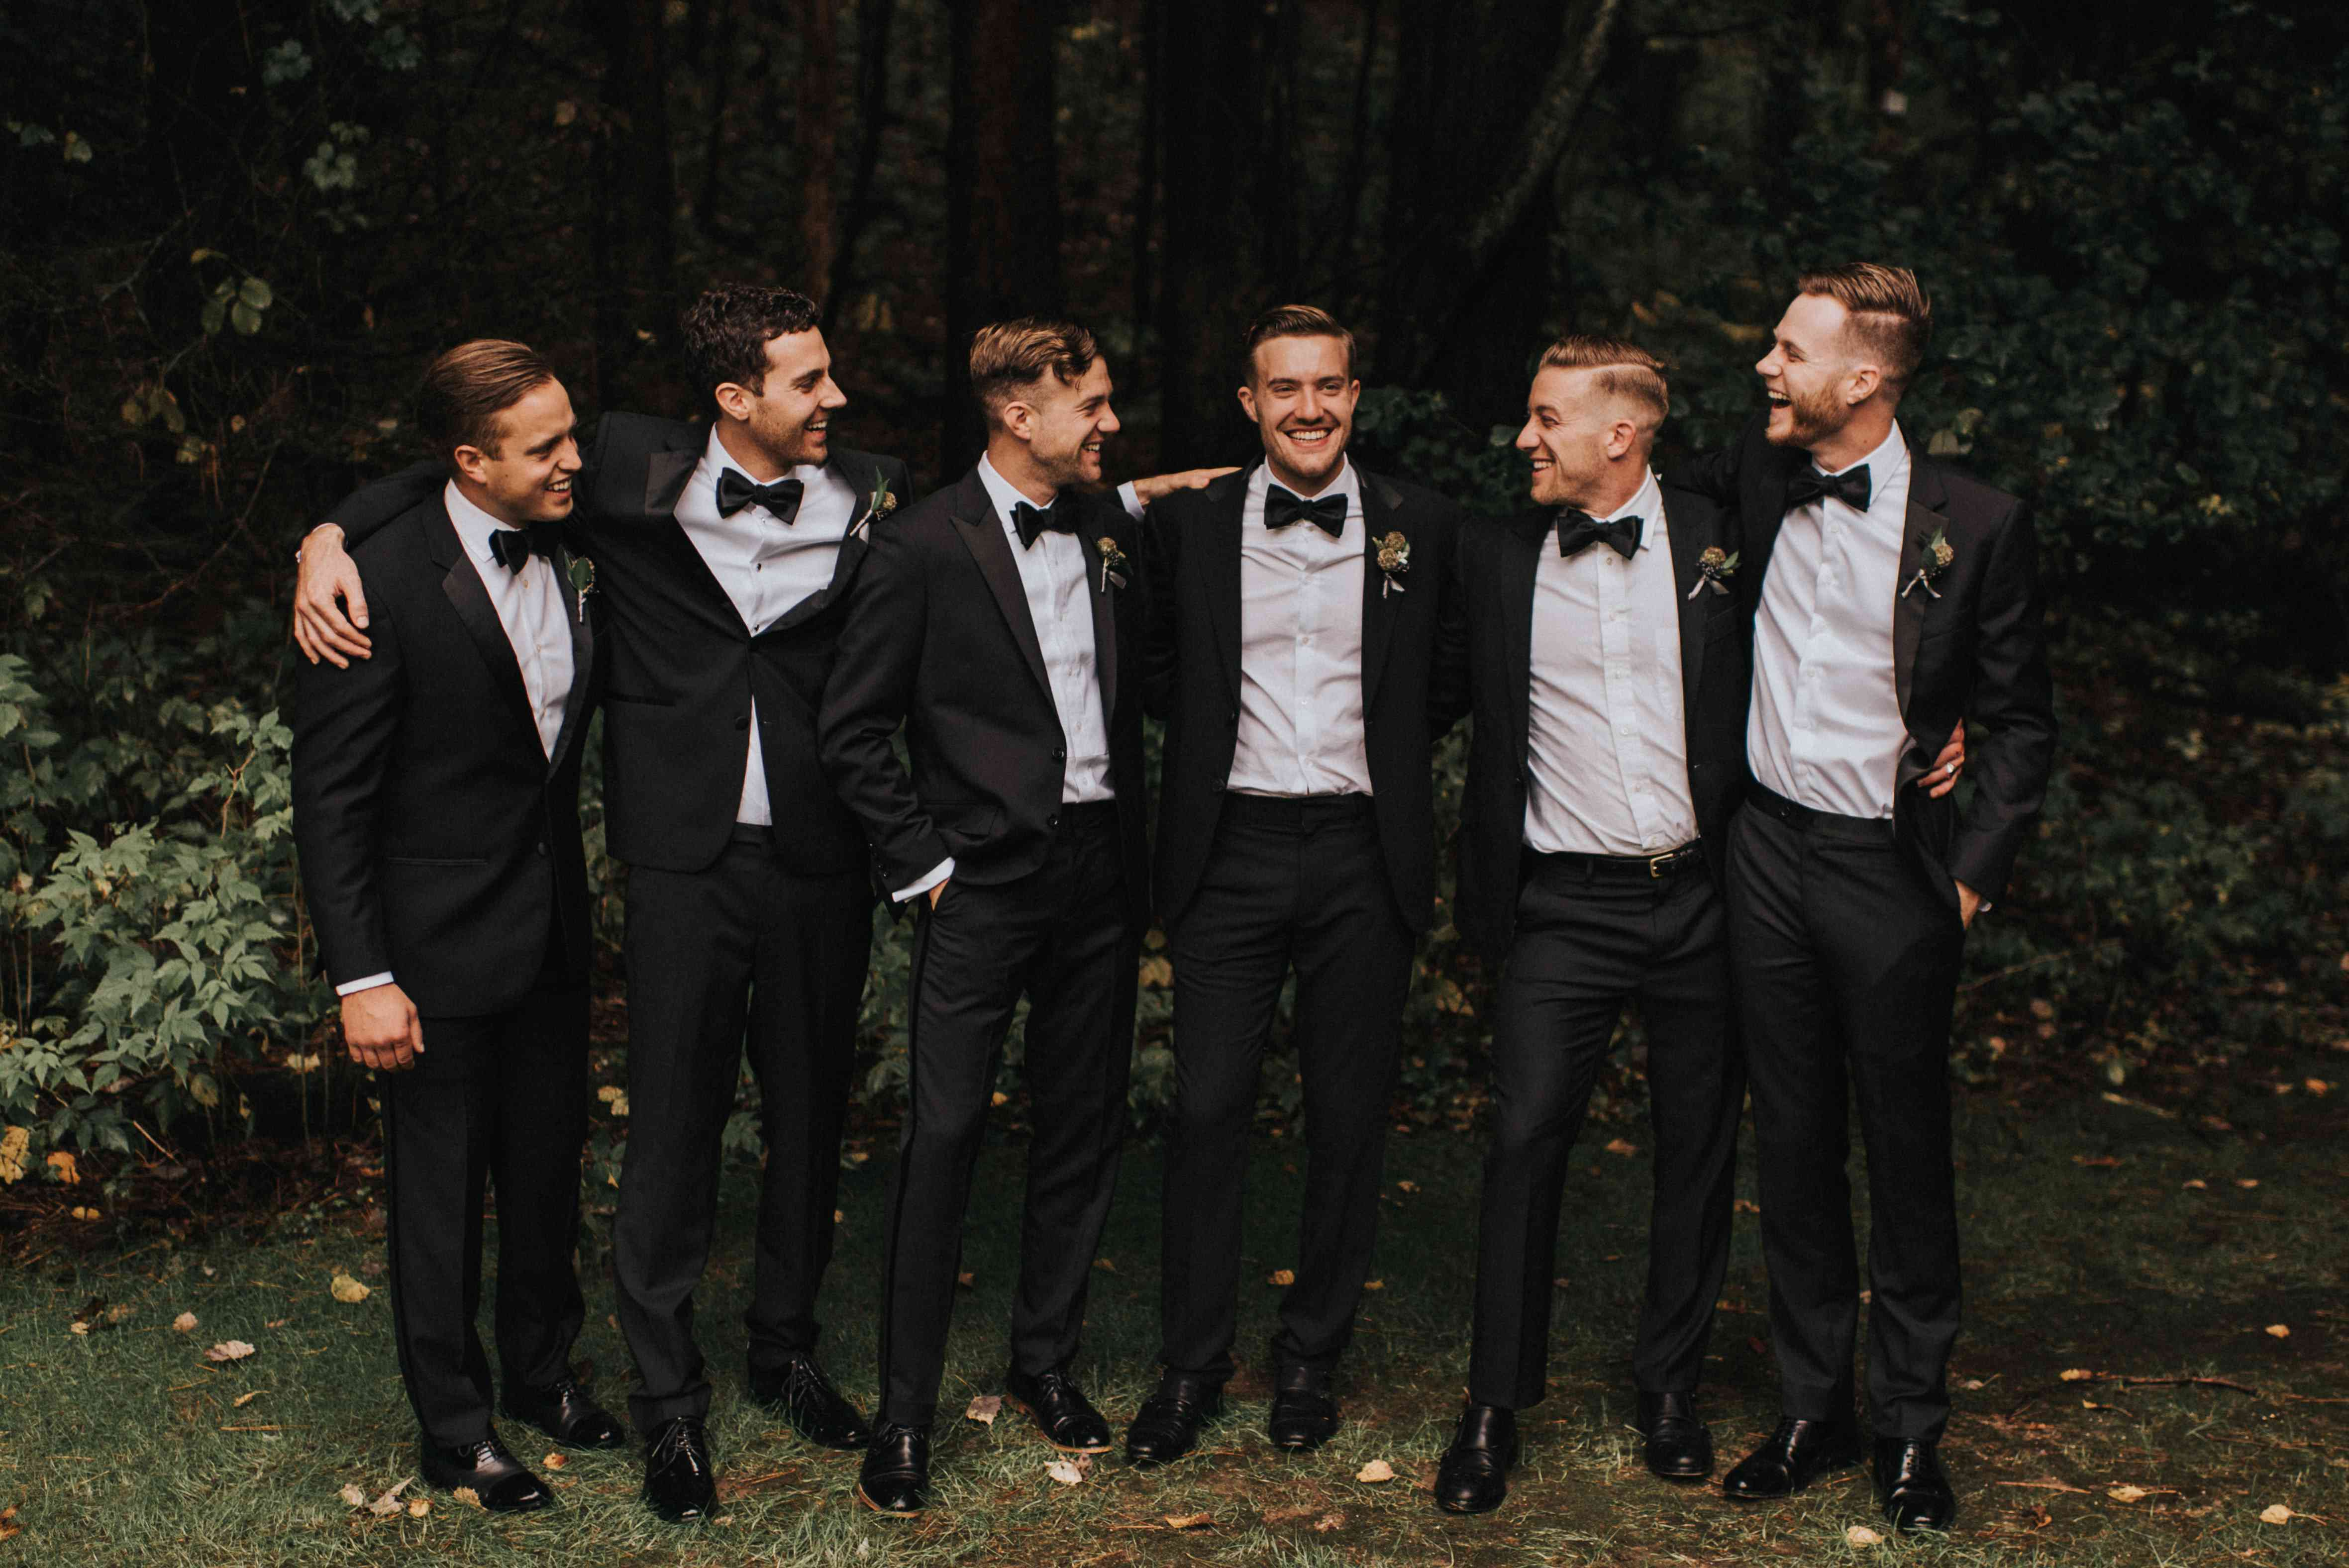 personalized michigan wedding, groom and groomsmen in tuxedos